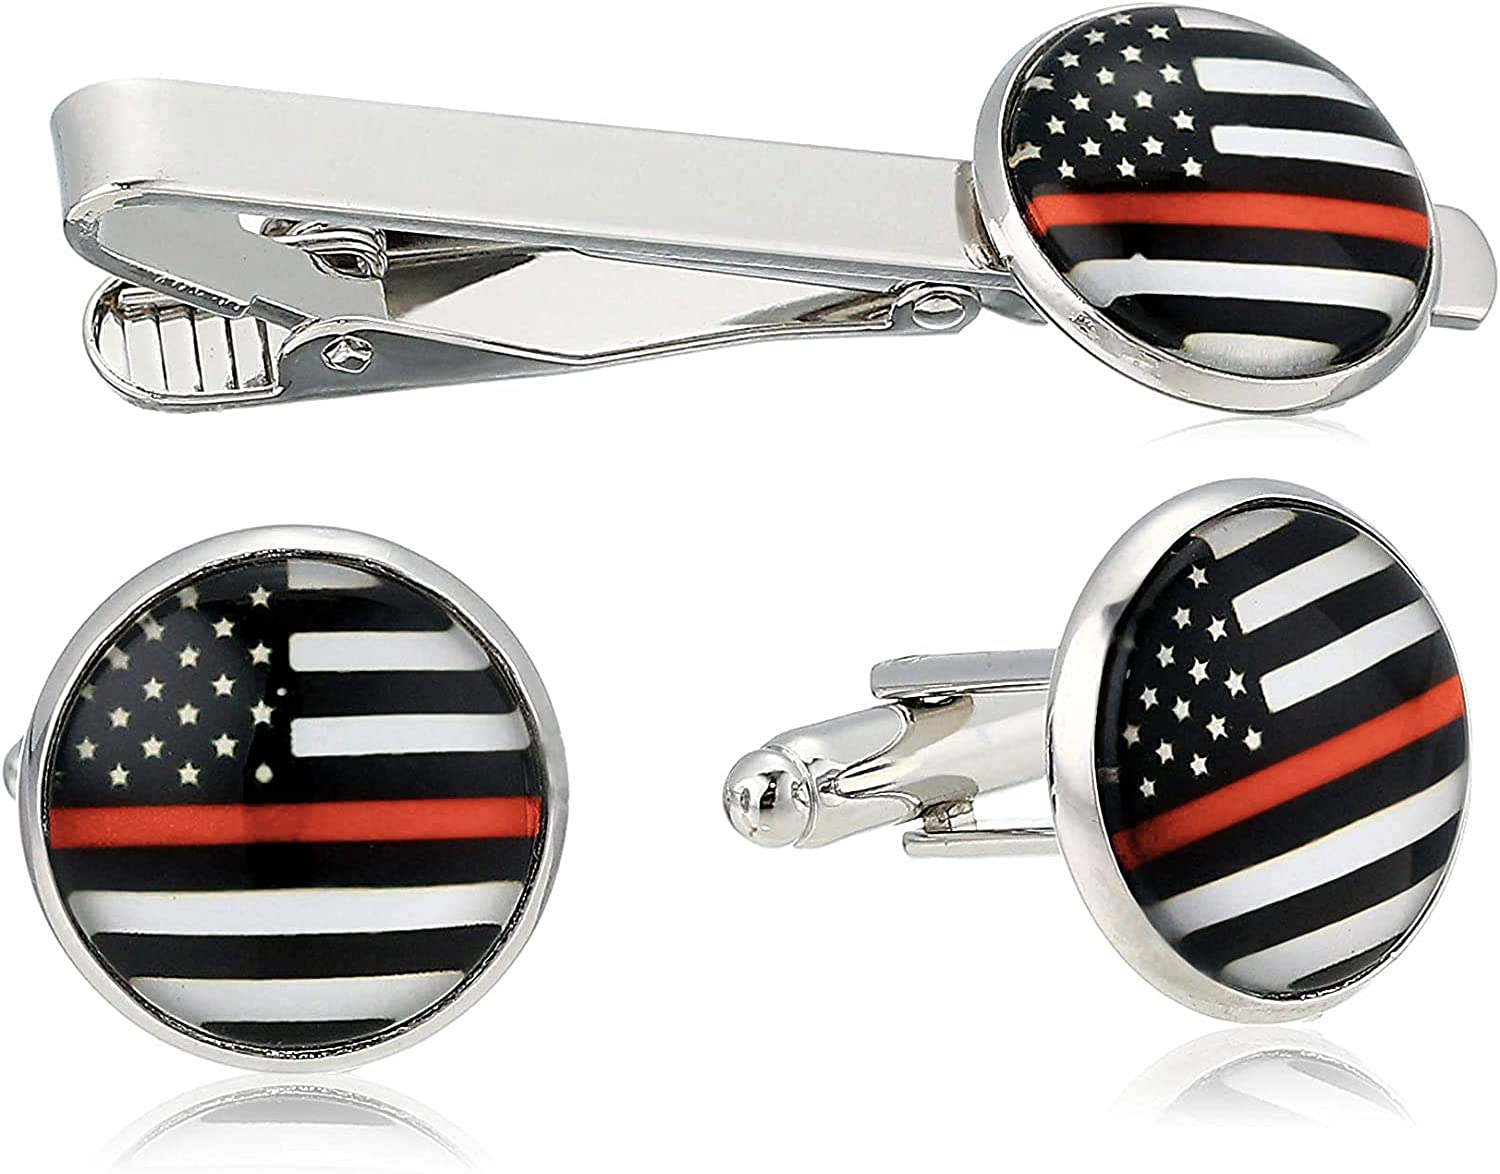 American Flag Tie Bar Clip and Cufflinks Set - Silver Colored Metal Plated - Luxury Clothing Accessories